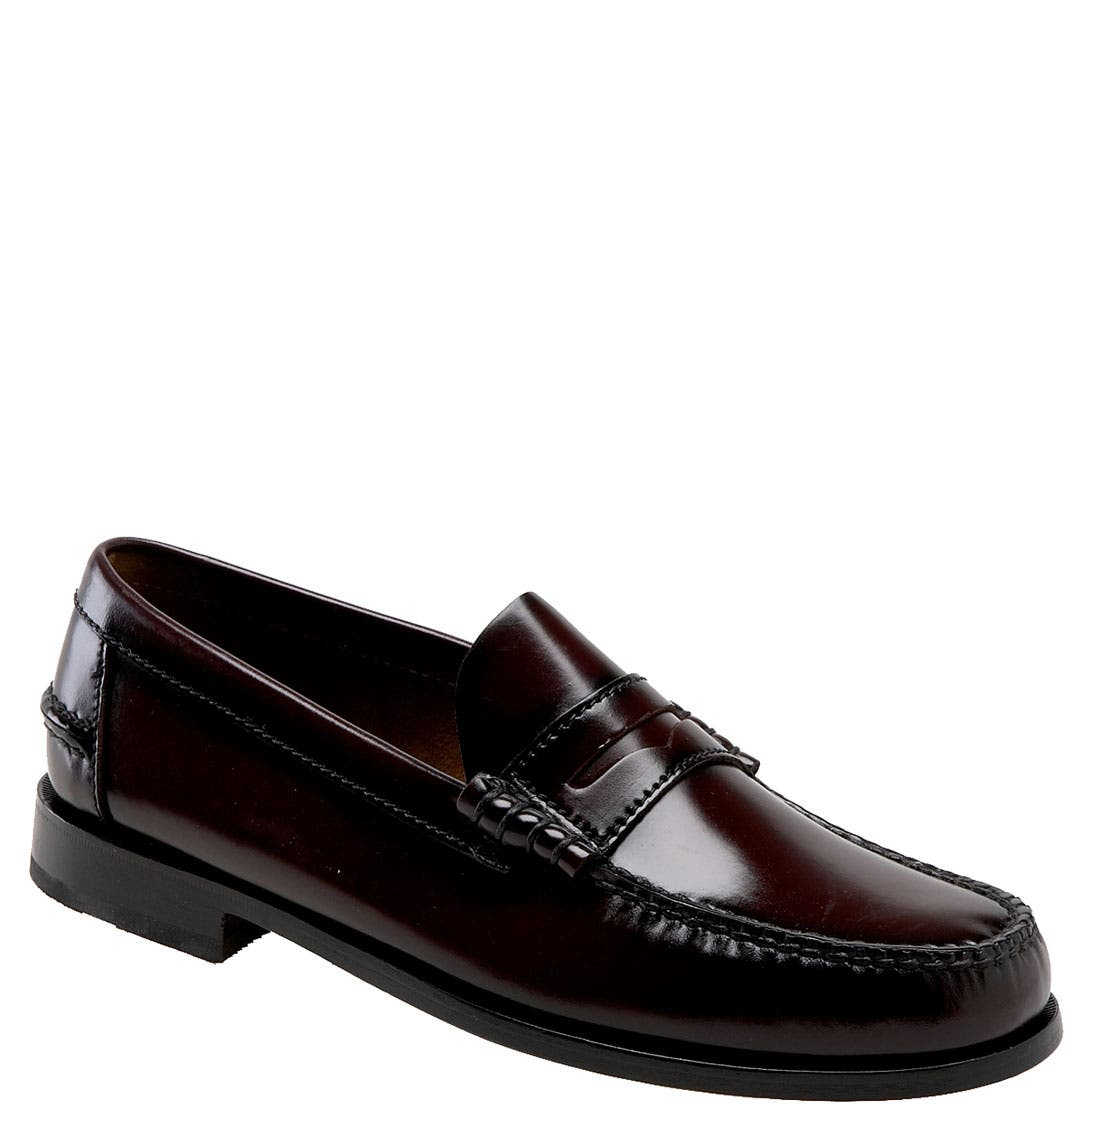 'Berkley' Penny Loafer,                             Main thumbnail 1, color,                             BURGUNDY